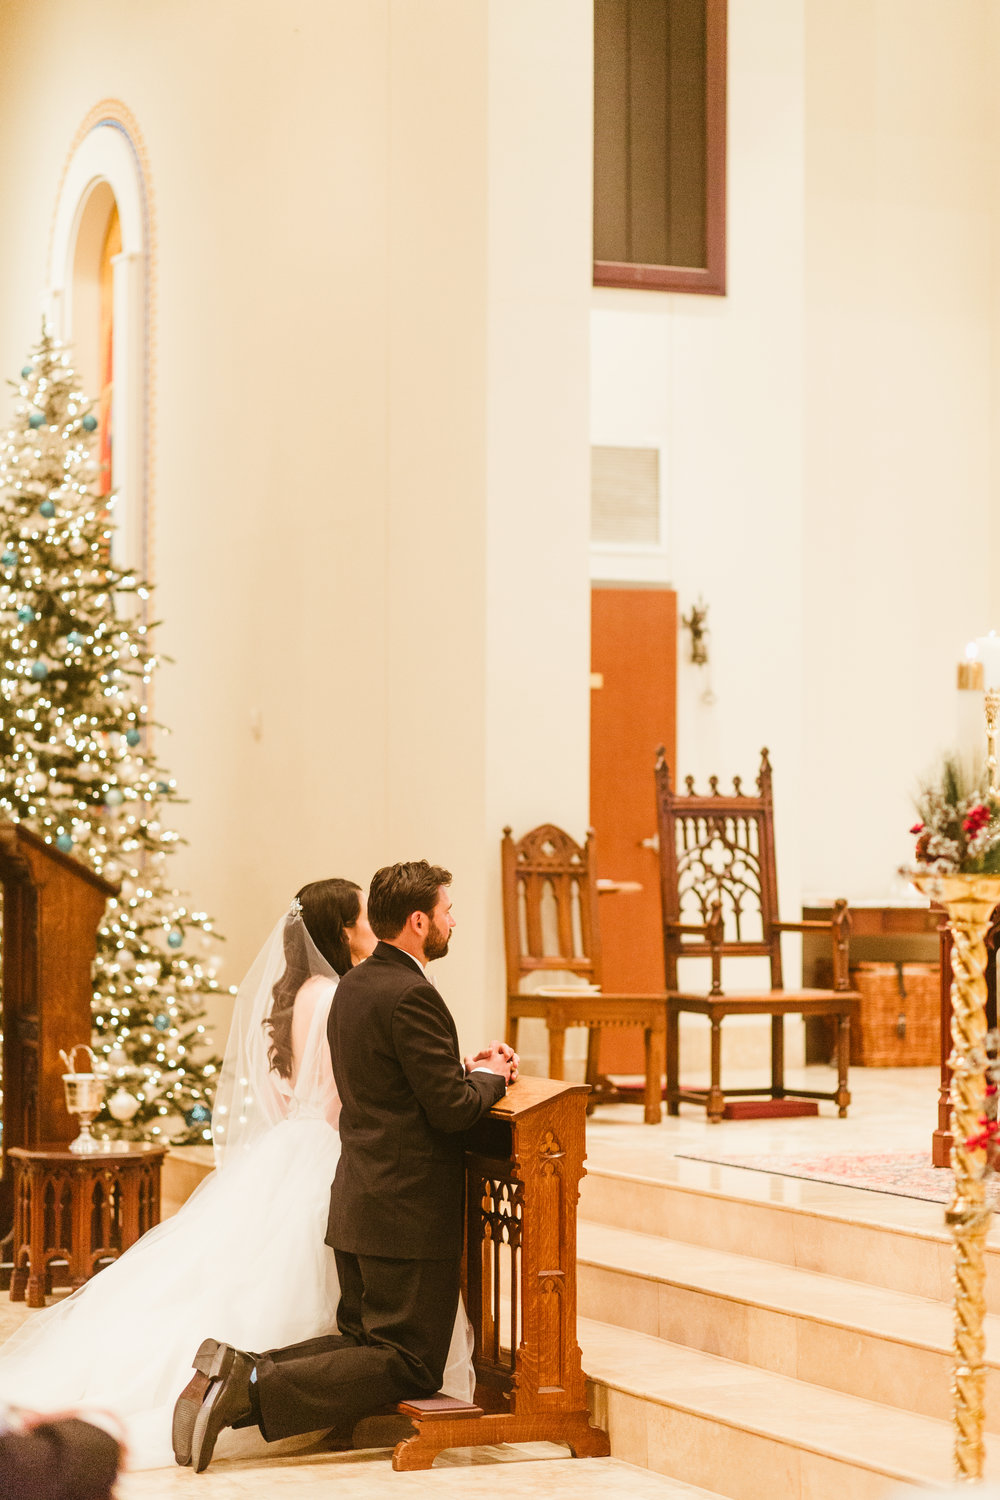 After receiving one undeserved gift (the Sacrament of Marriage) and preparing to receive the most undeserved gift (the Eucharist). Photo by  Leah Muse .